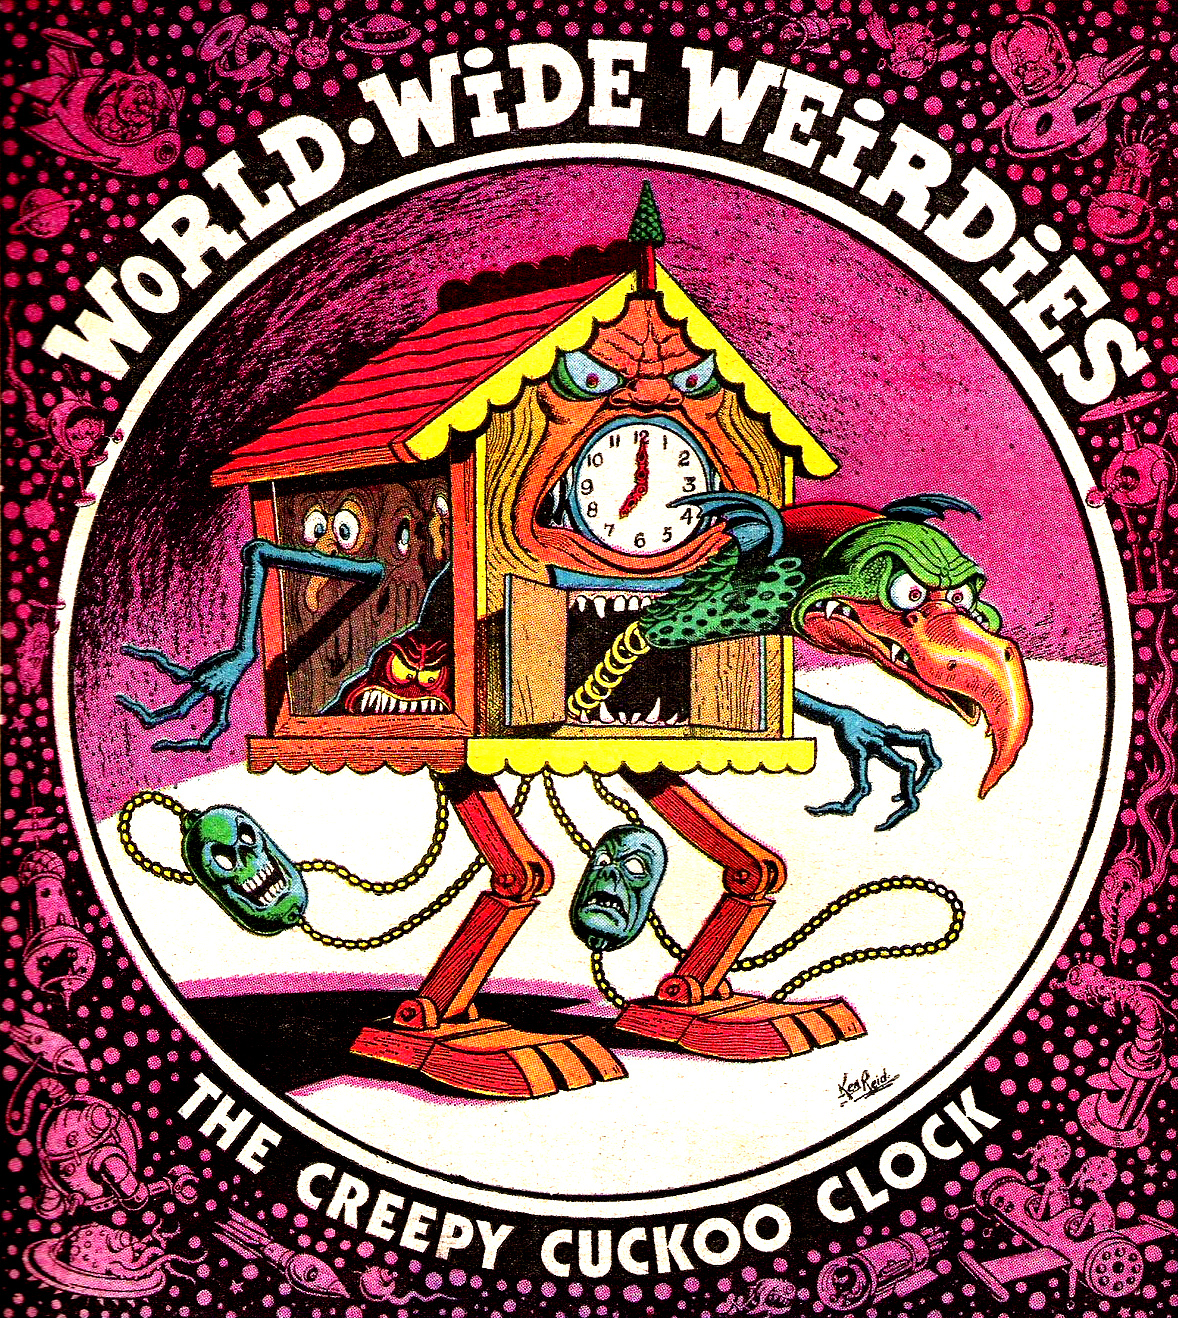 Ken Reid - World Wide Weirdies 41